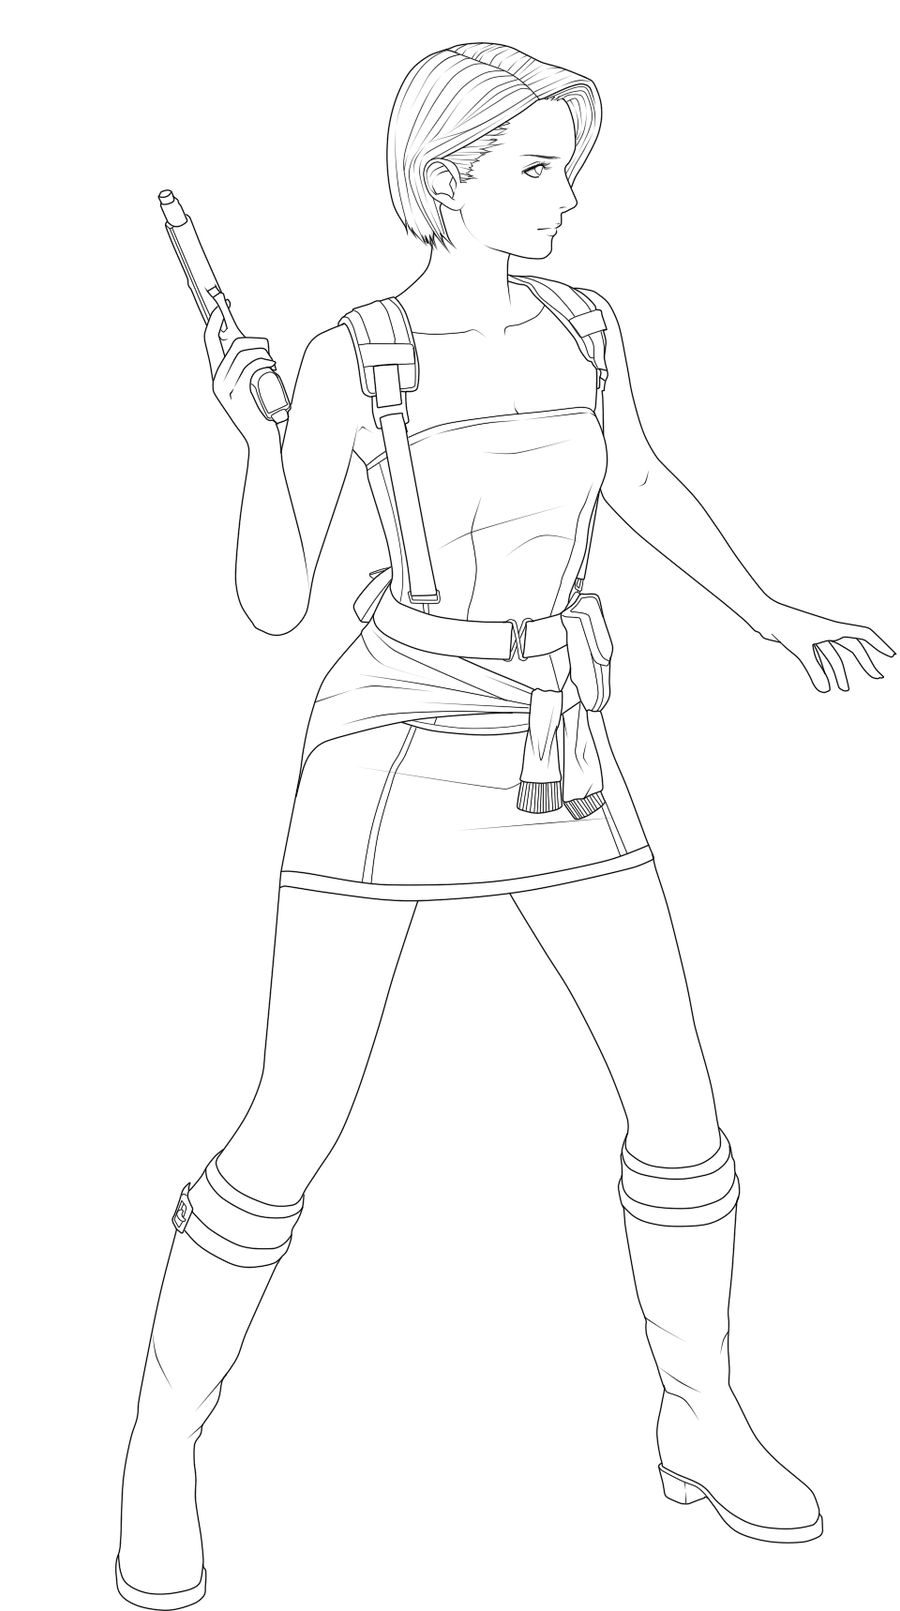 resident evil 5 jill valentine coloring pages | Jill Valentine line Art by AtomicApplePie10 on DeviantArt